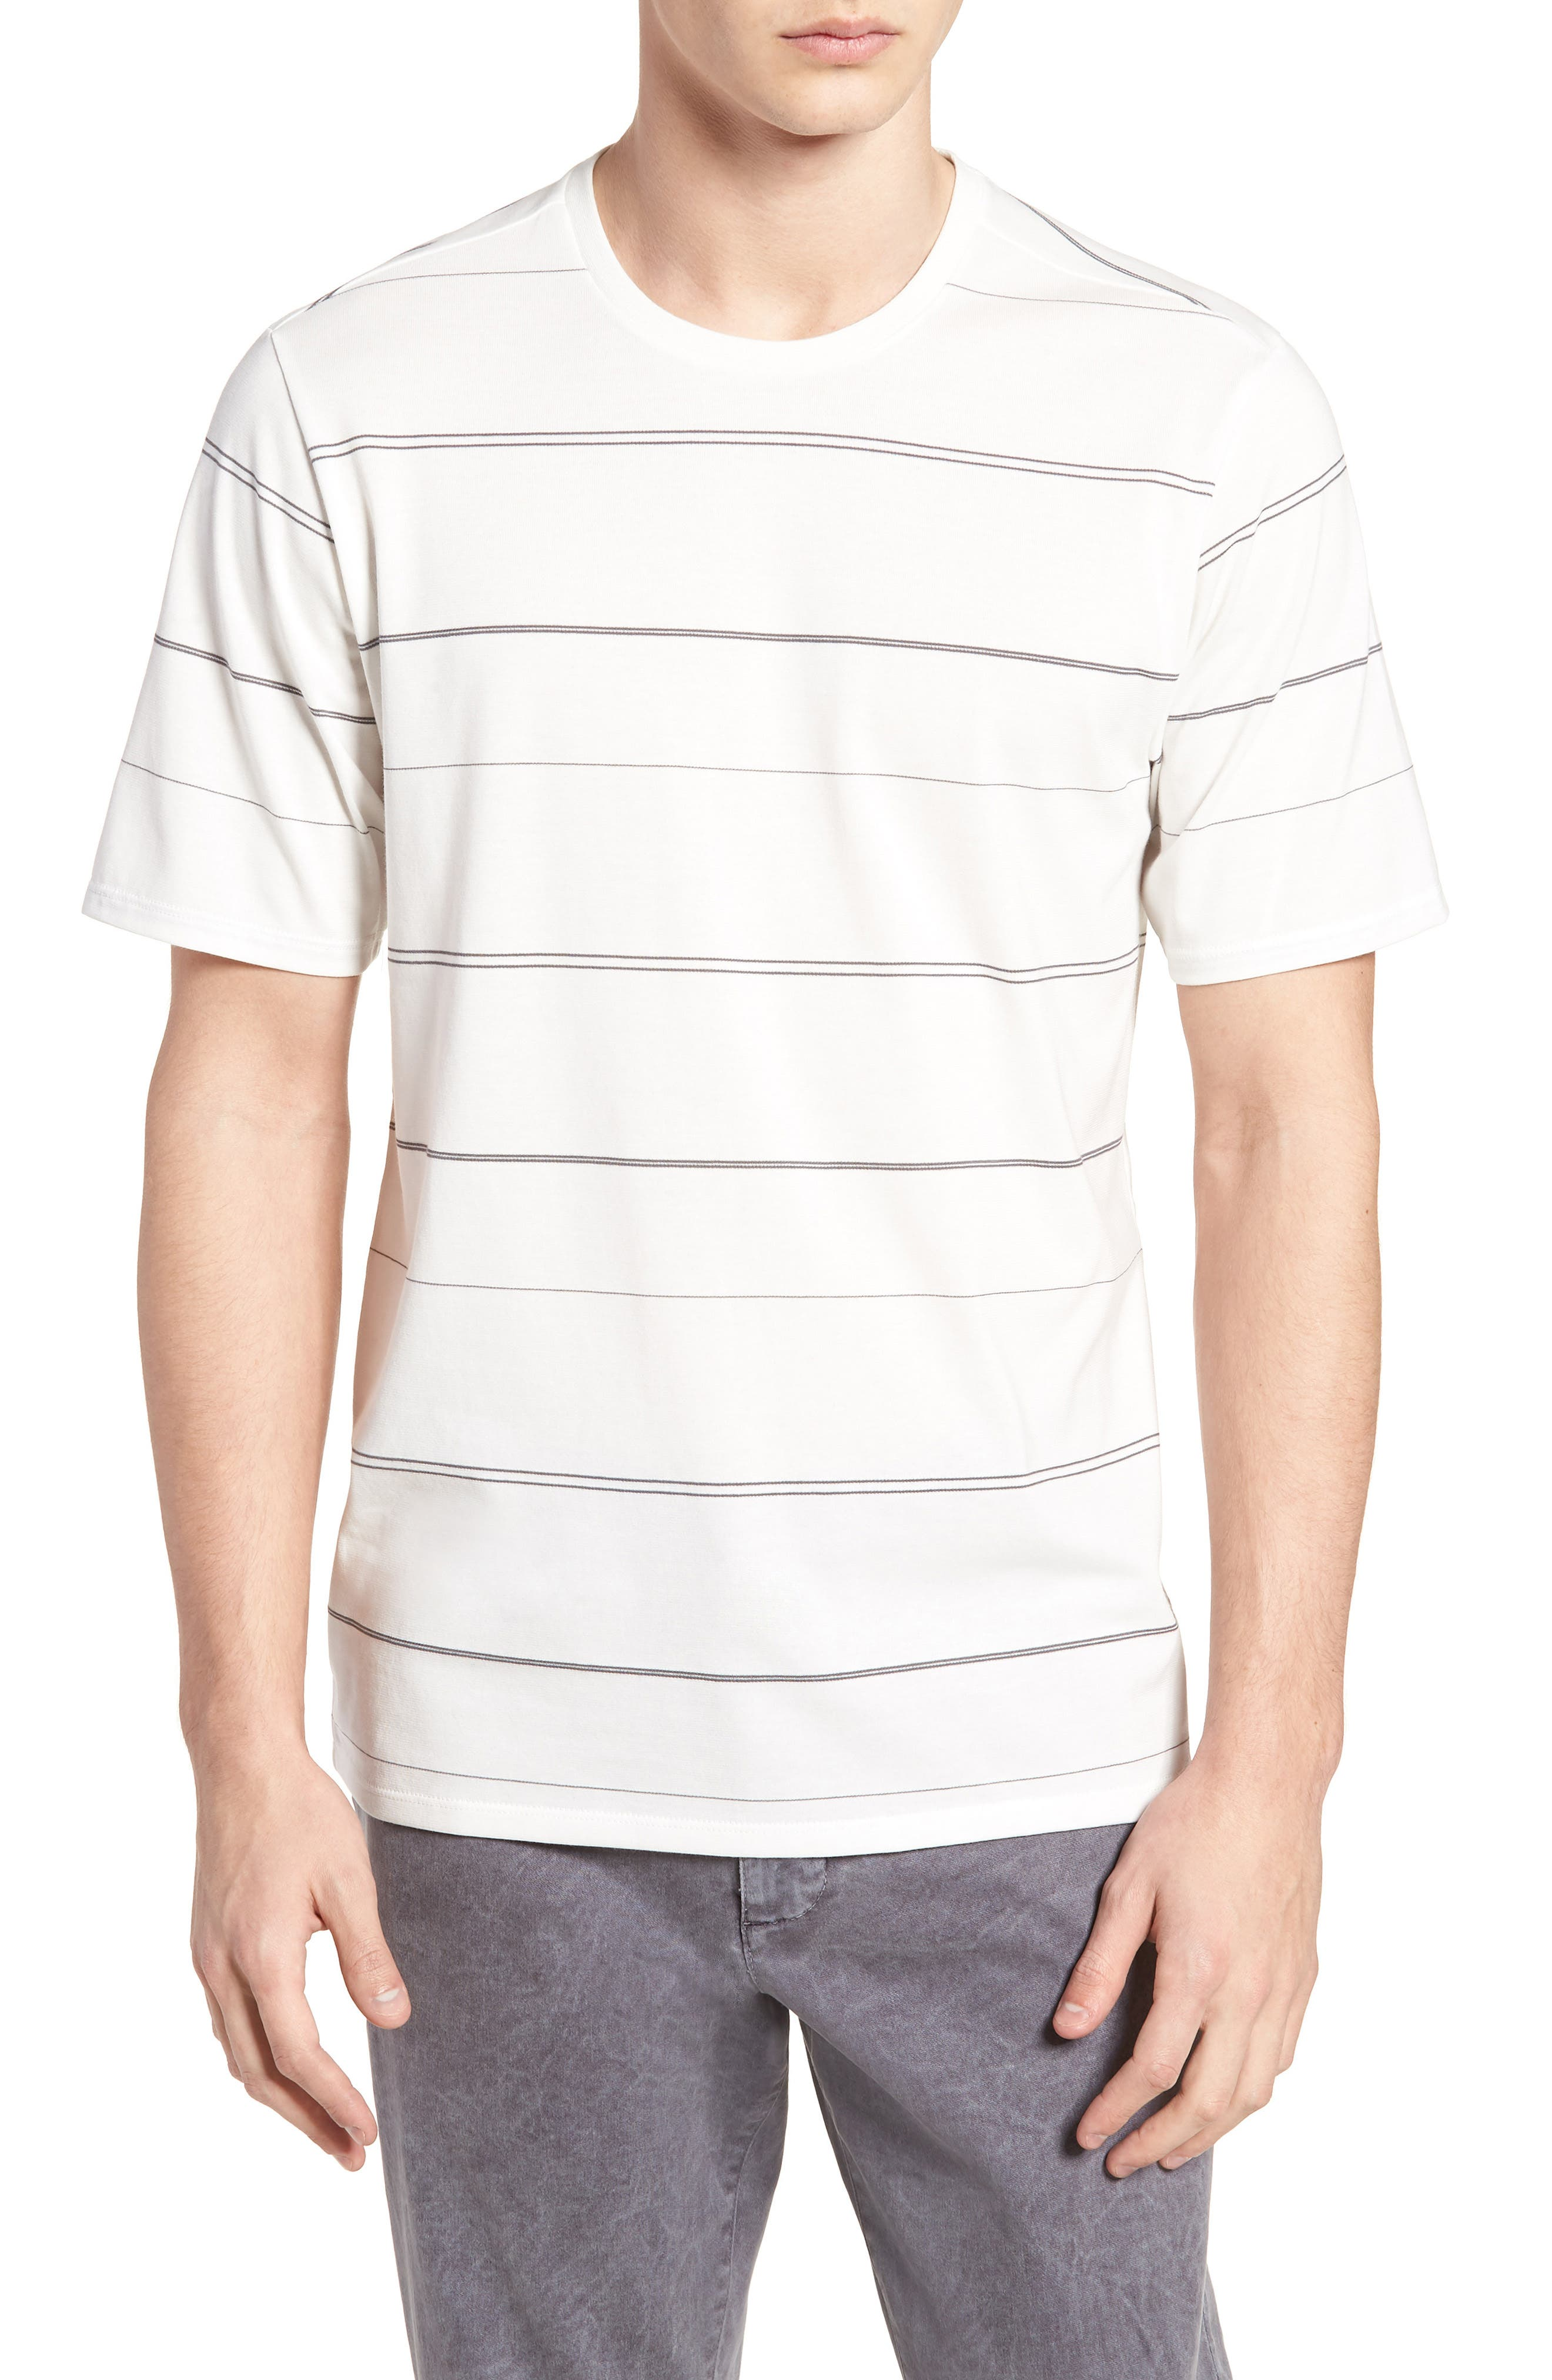 Alternate Image 1 Selected - Hurley Dri-FIT New Wave T-Shirt